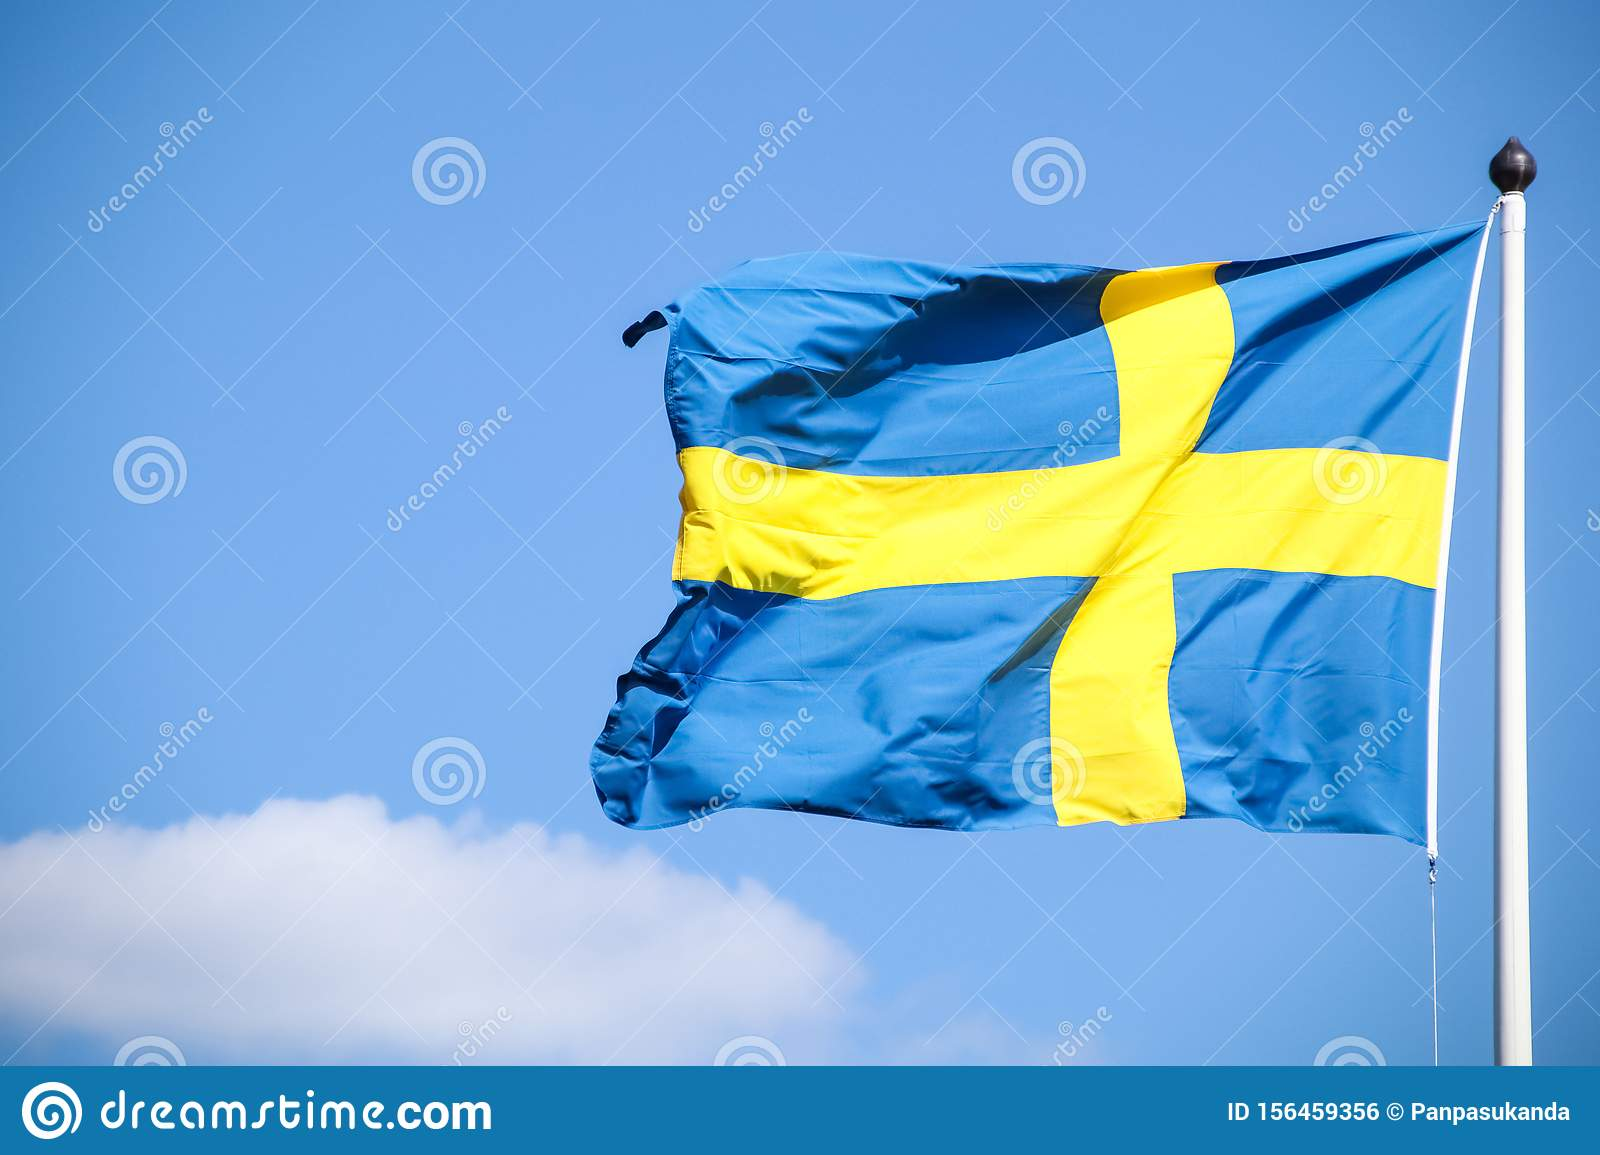 Sweden flag on a pole with beautiful sky background.